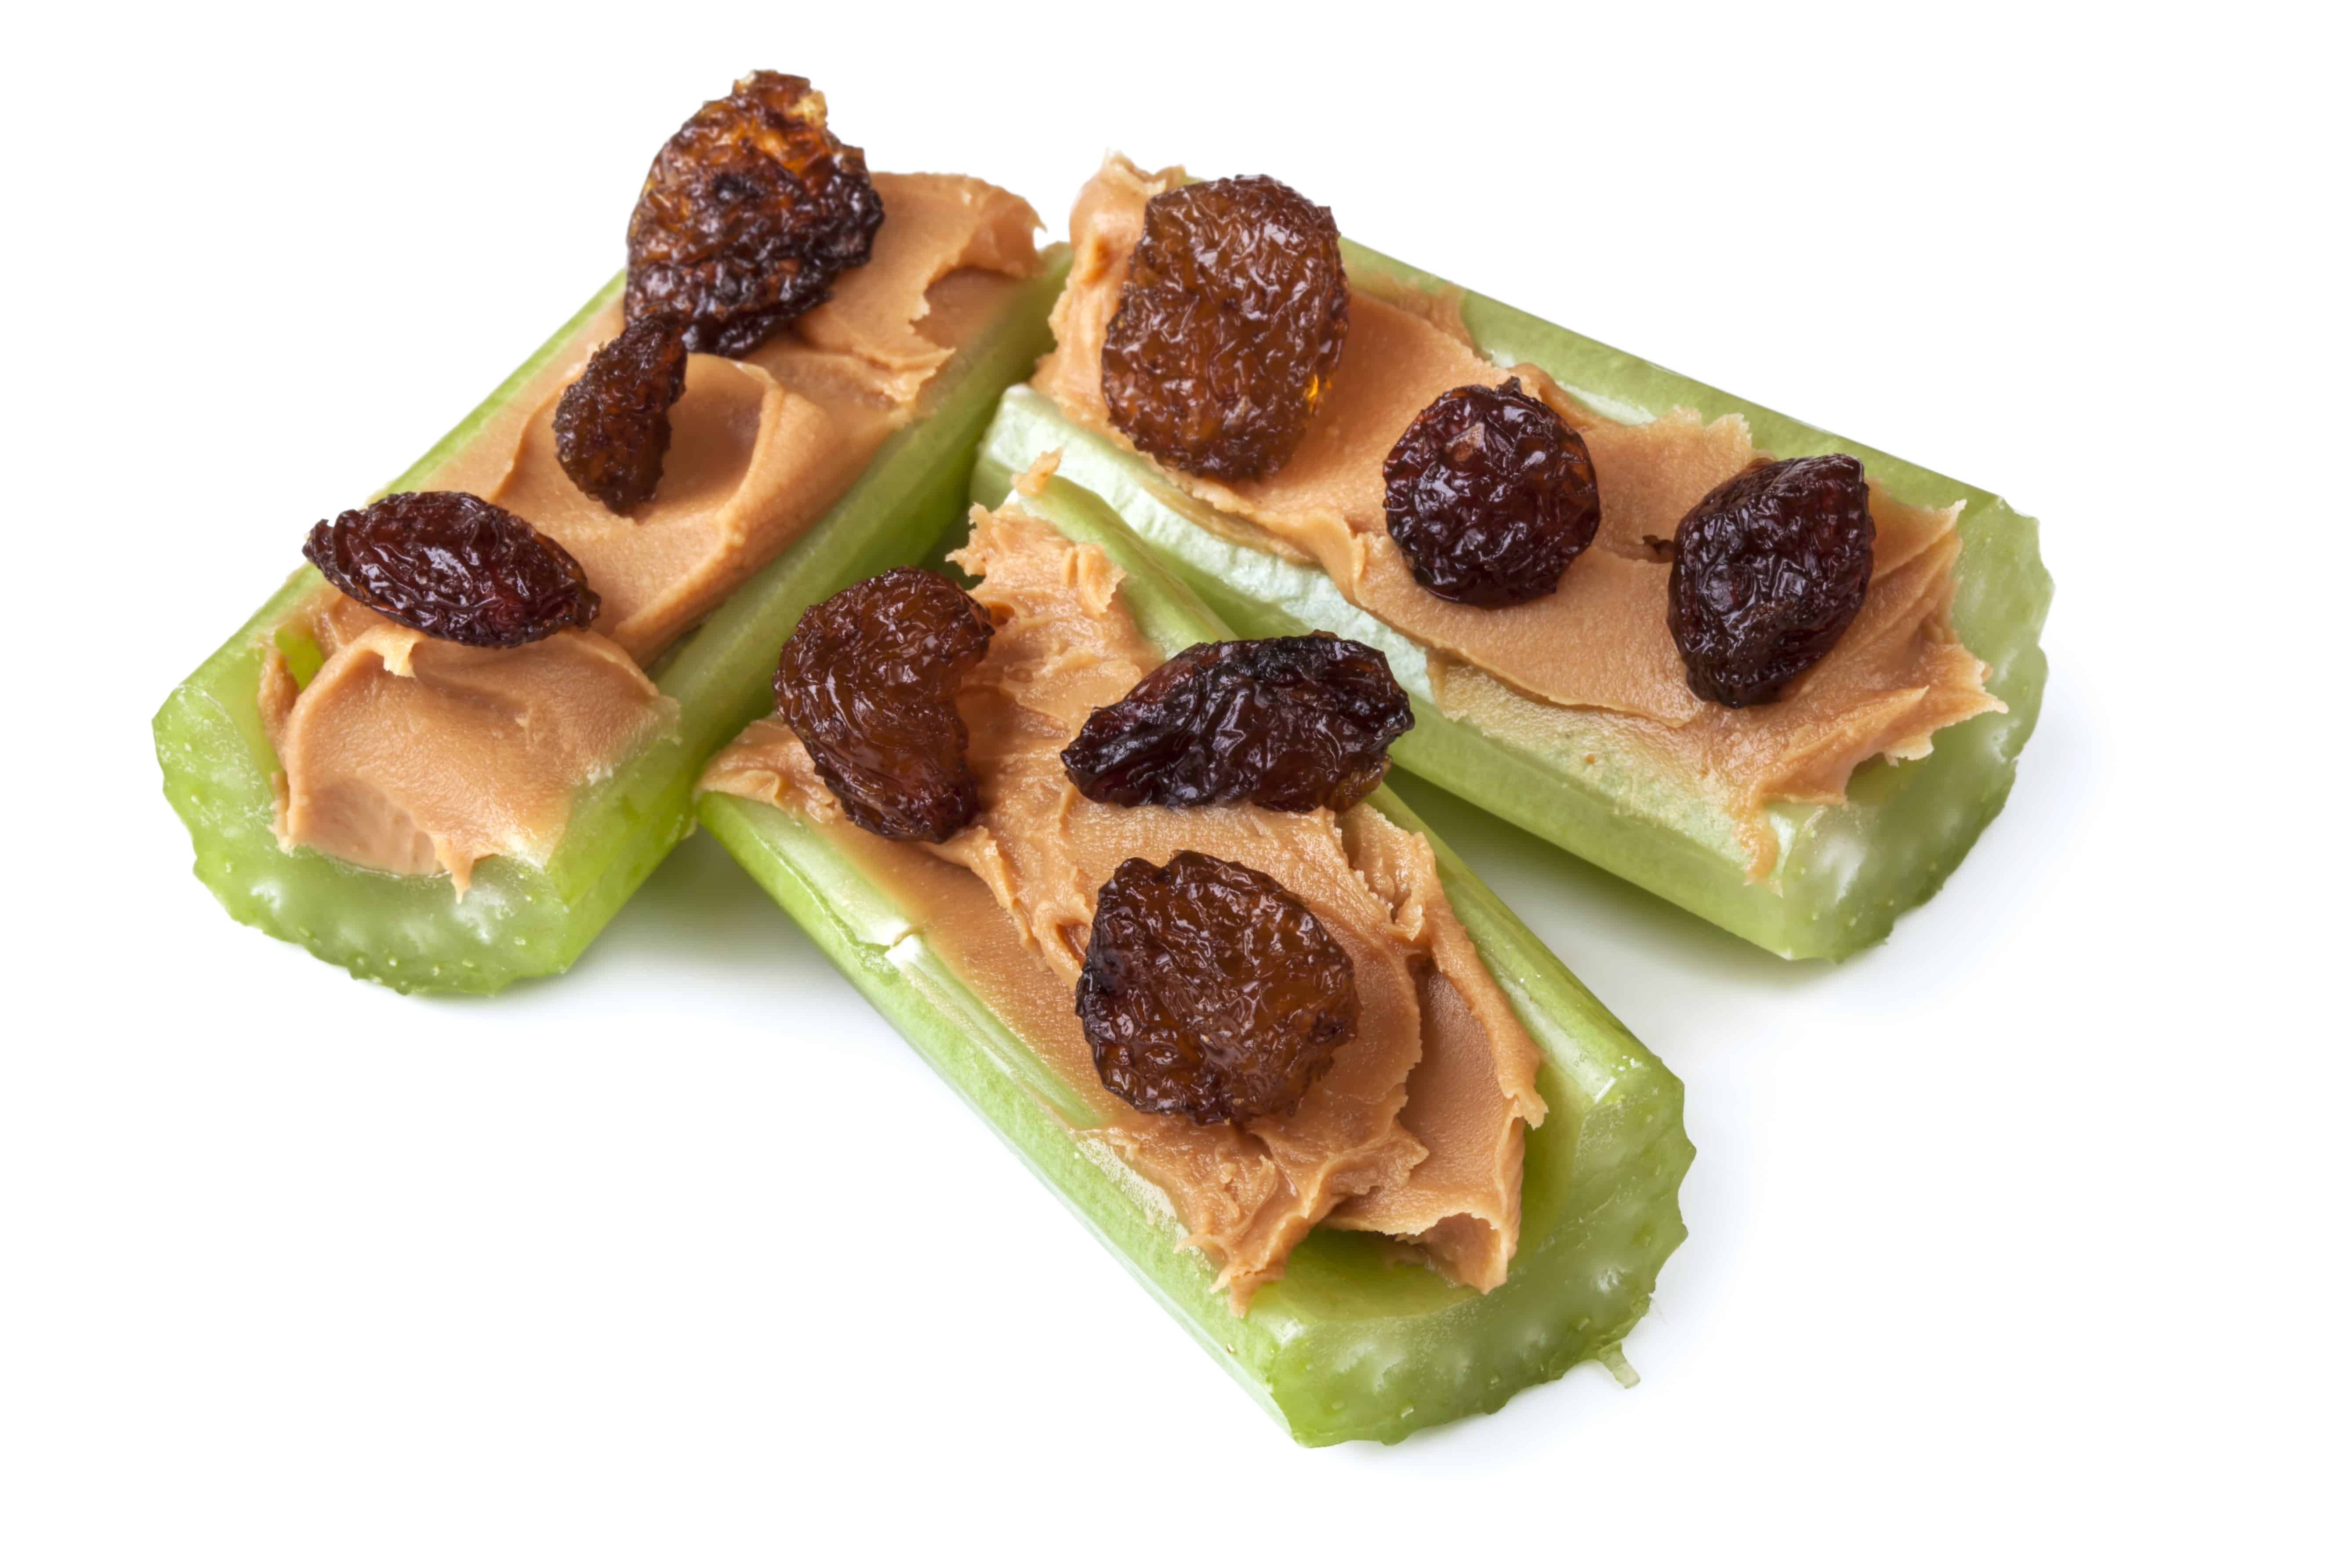 Easy after school snack of celery with peanut butter and raisins